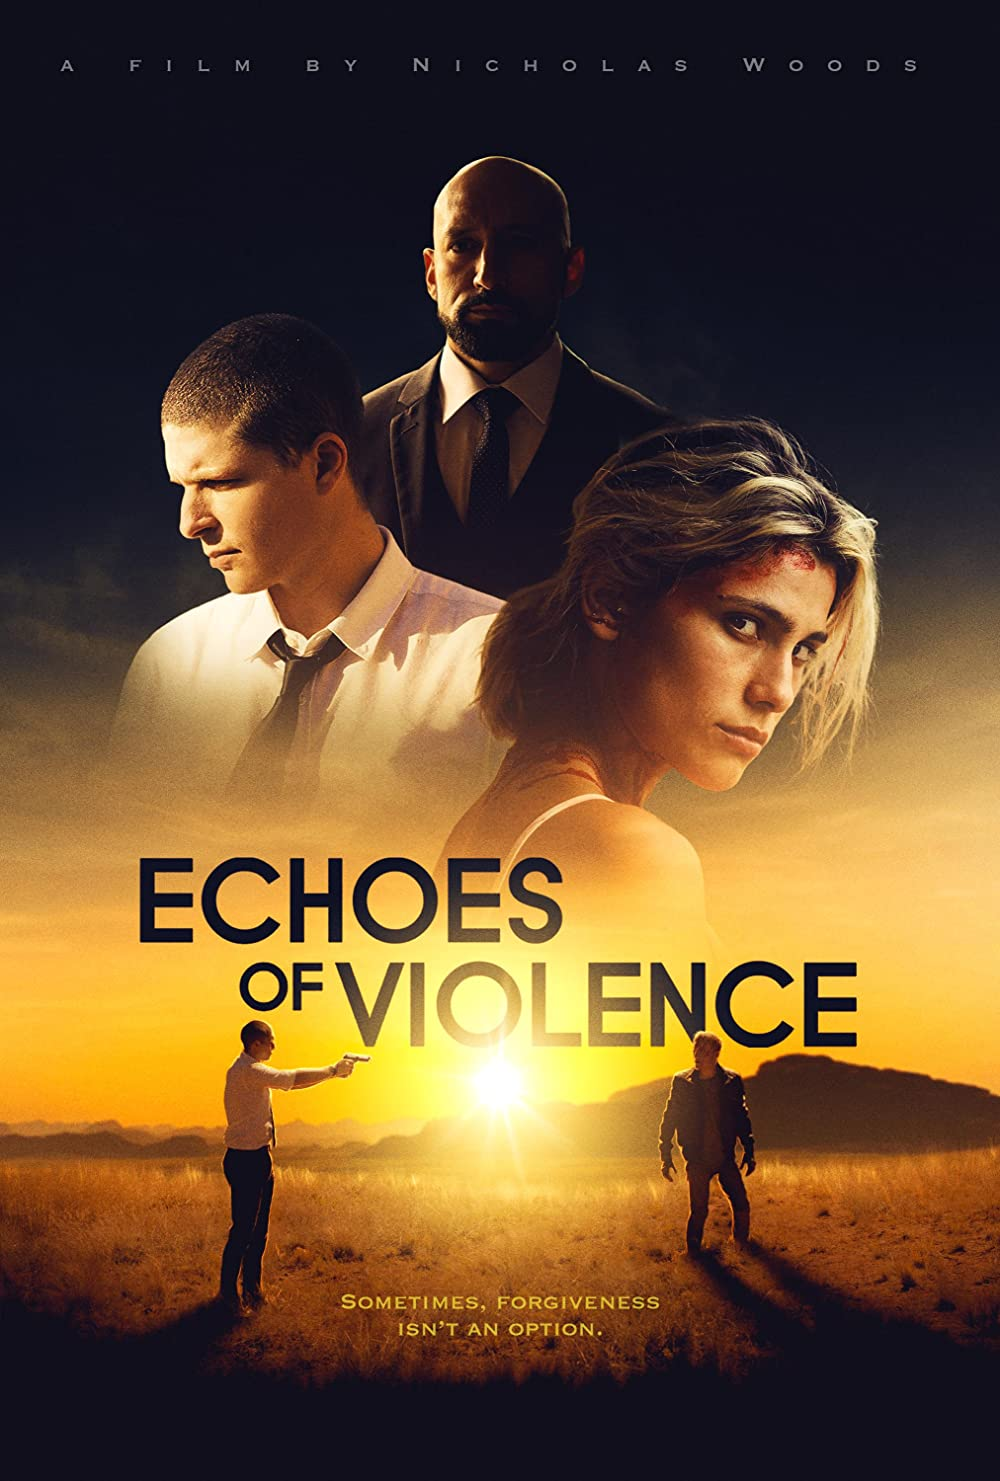 Download Echoes of Violence (2021) Tamil Dubbed (Voice Over) & English [Dual Audio] WebRip 720p [1XBET] Full Movie Online On 1xcinema.com